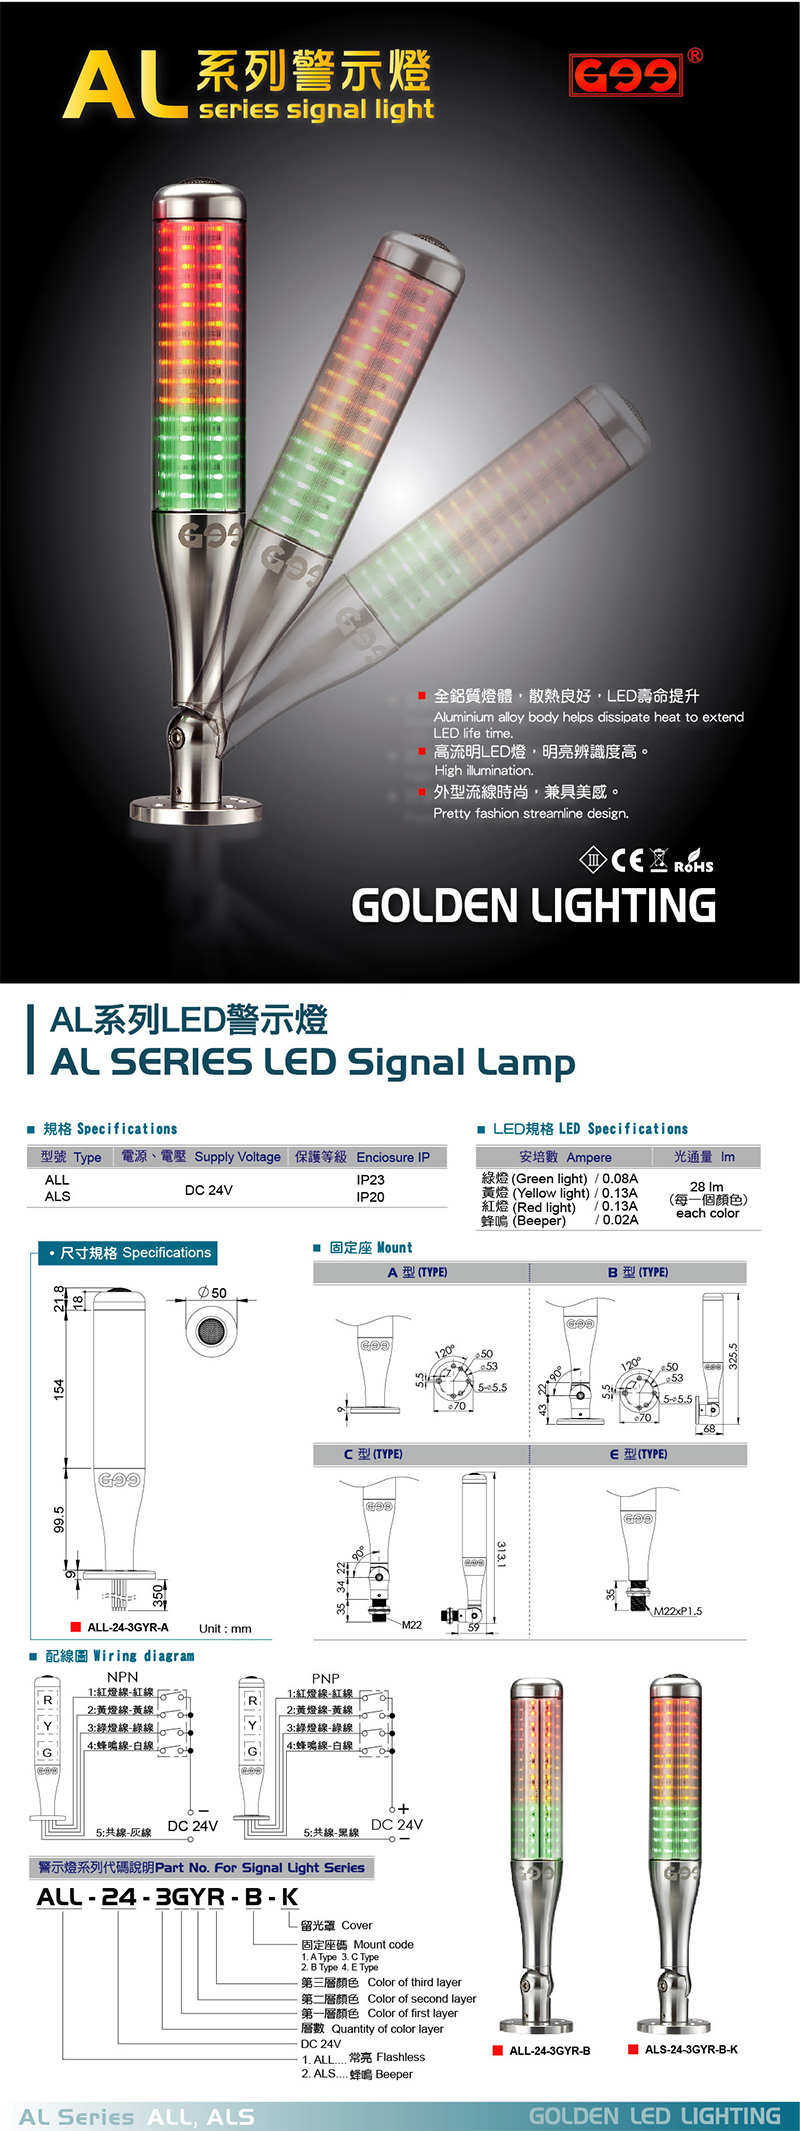 AL Series LED signal lamp